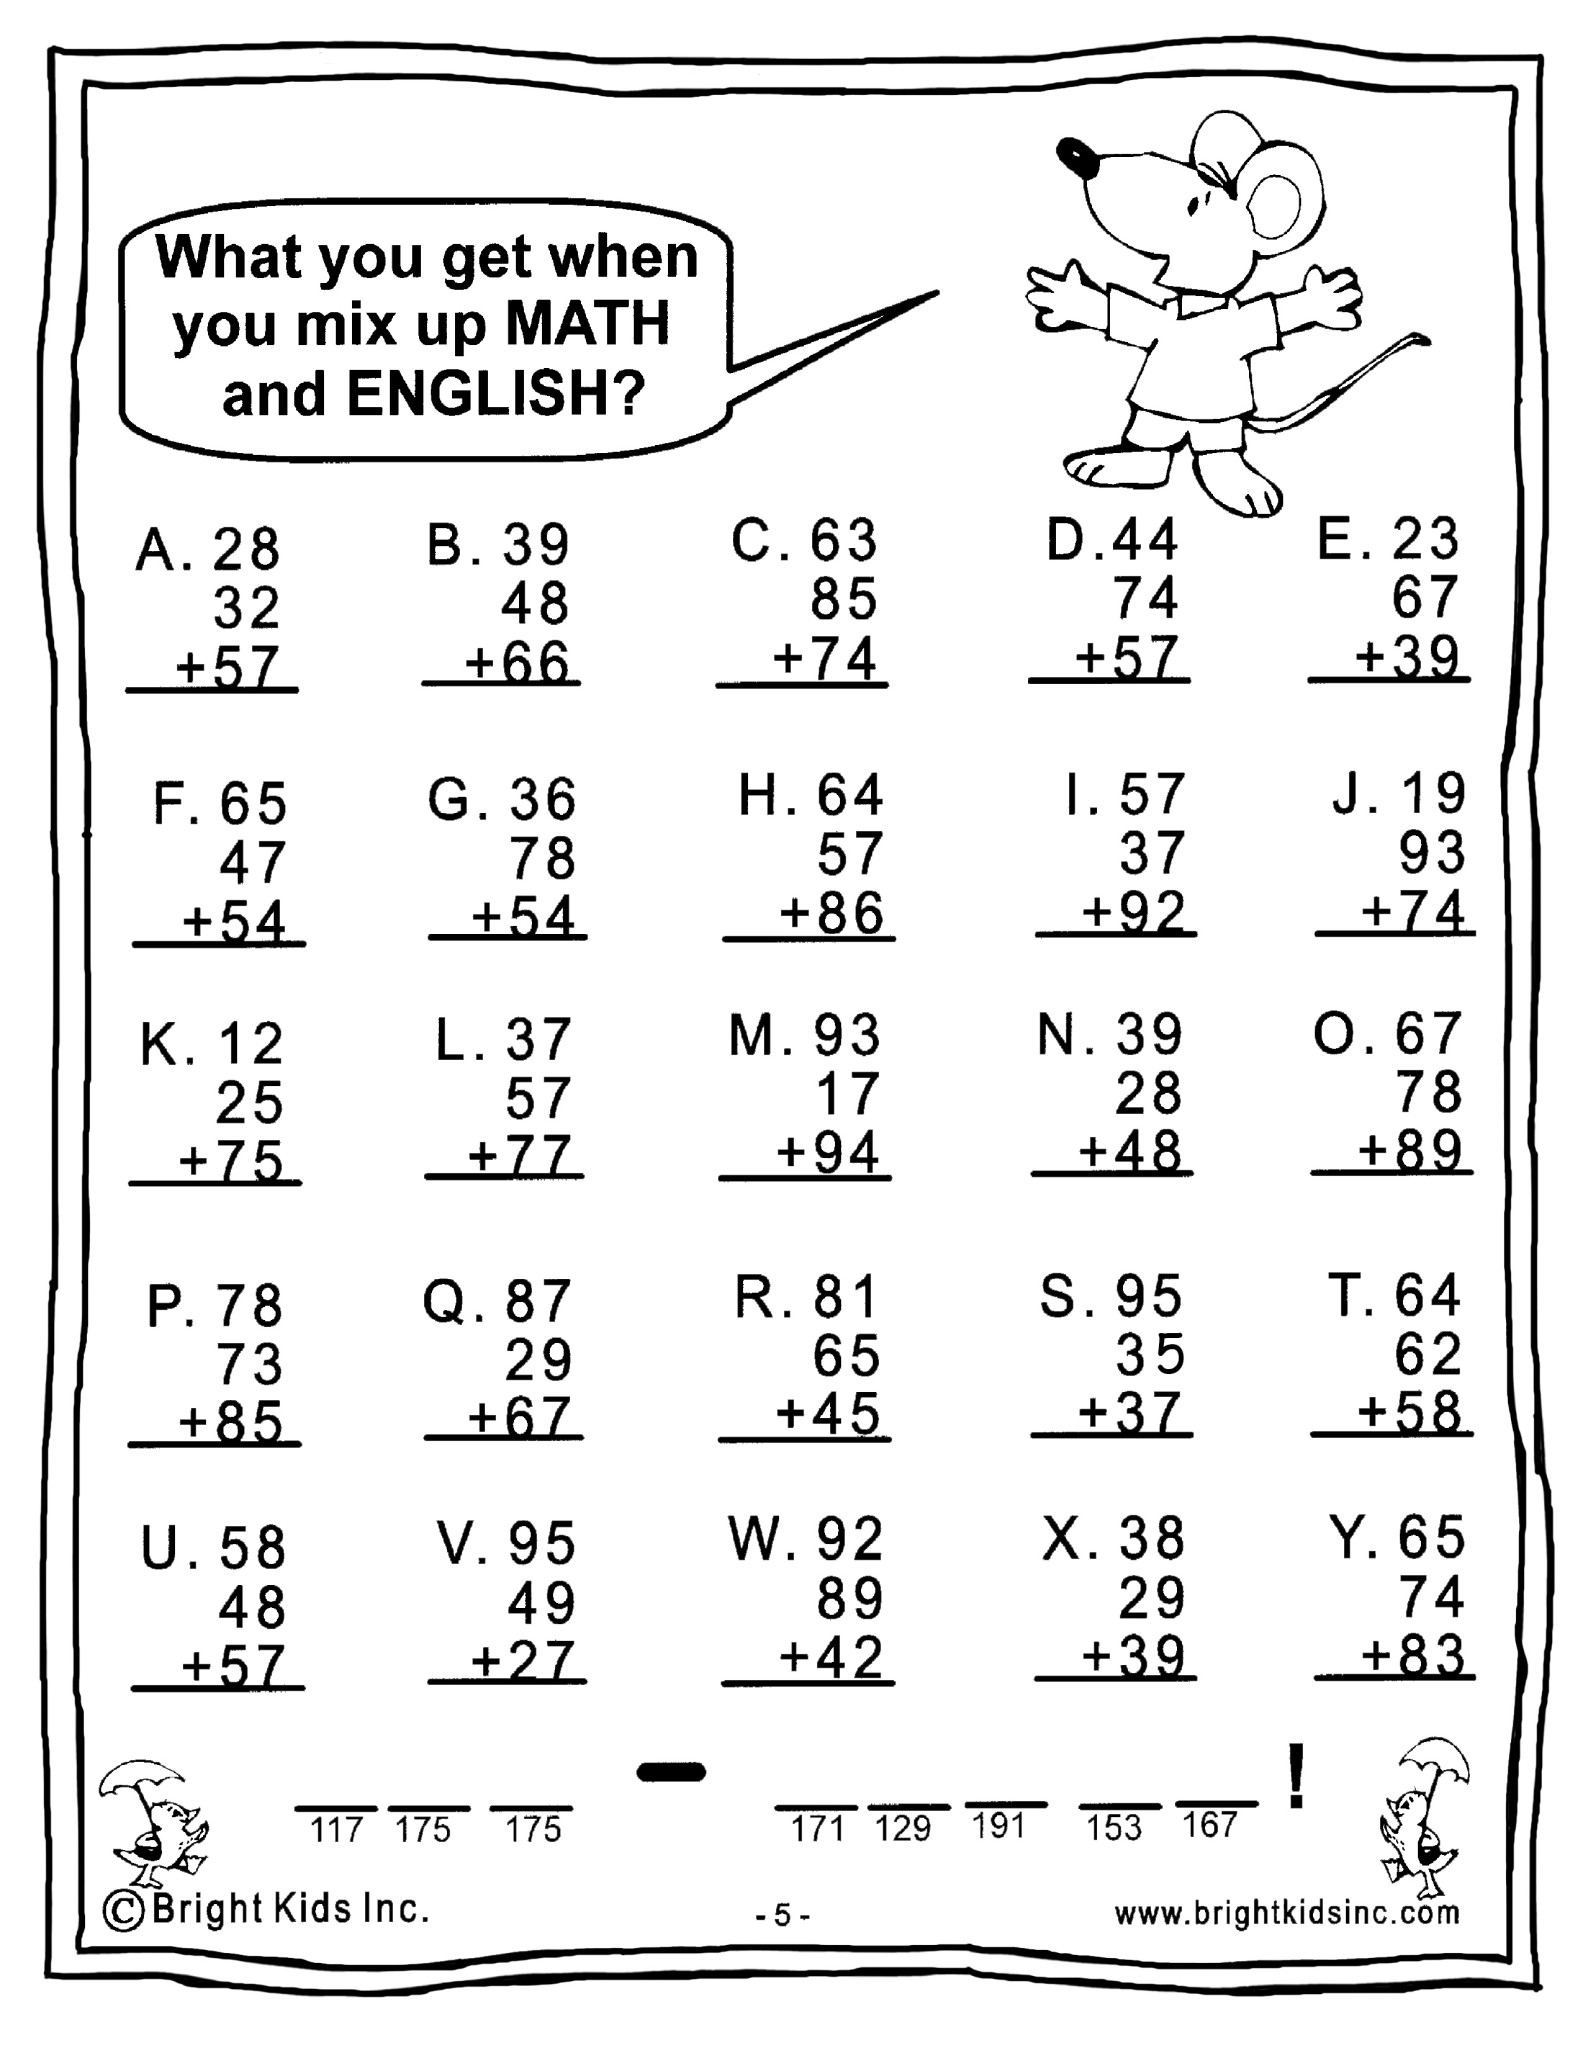 Worksheet Math For Grade 4 grade 4 math power workout